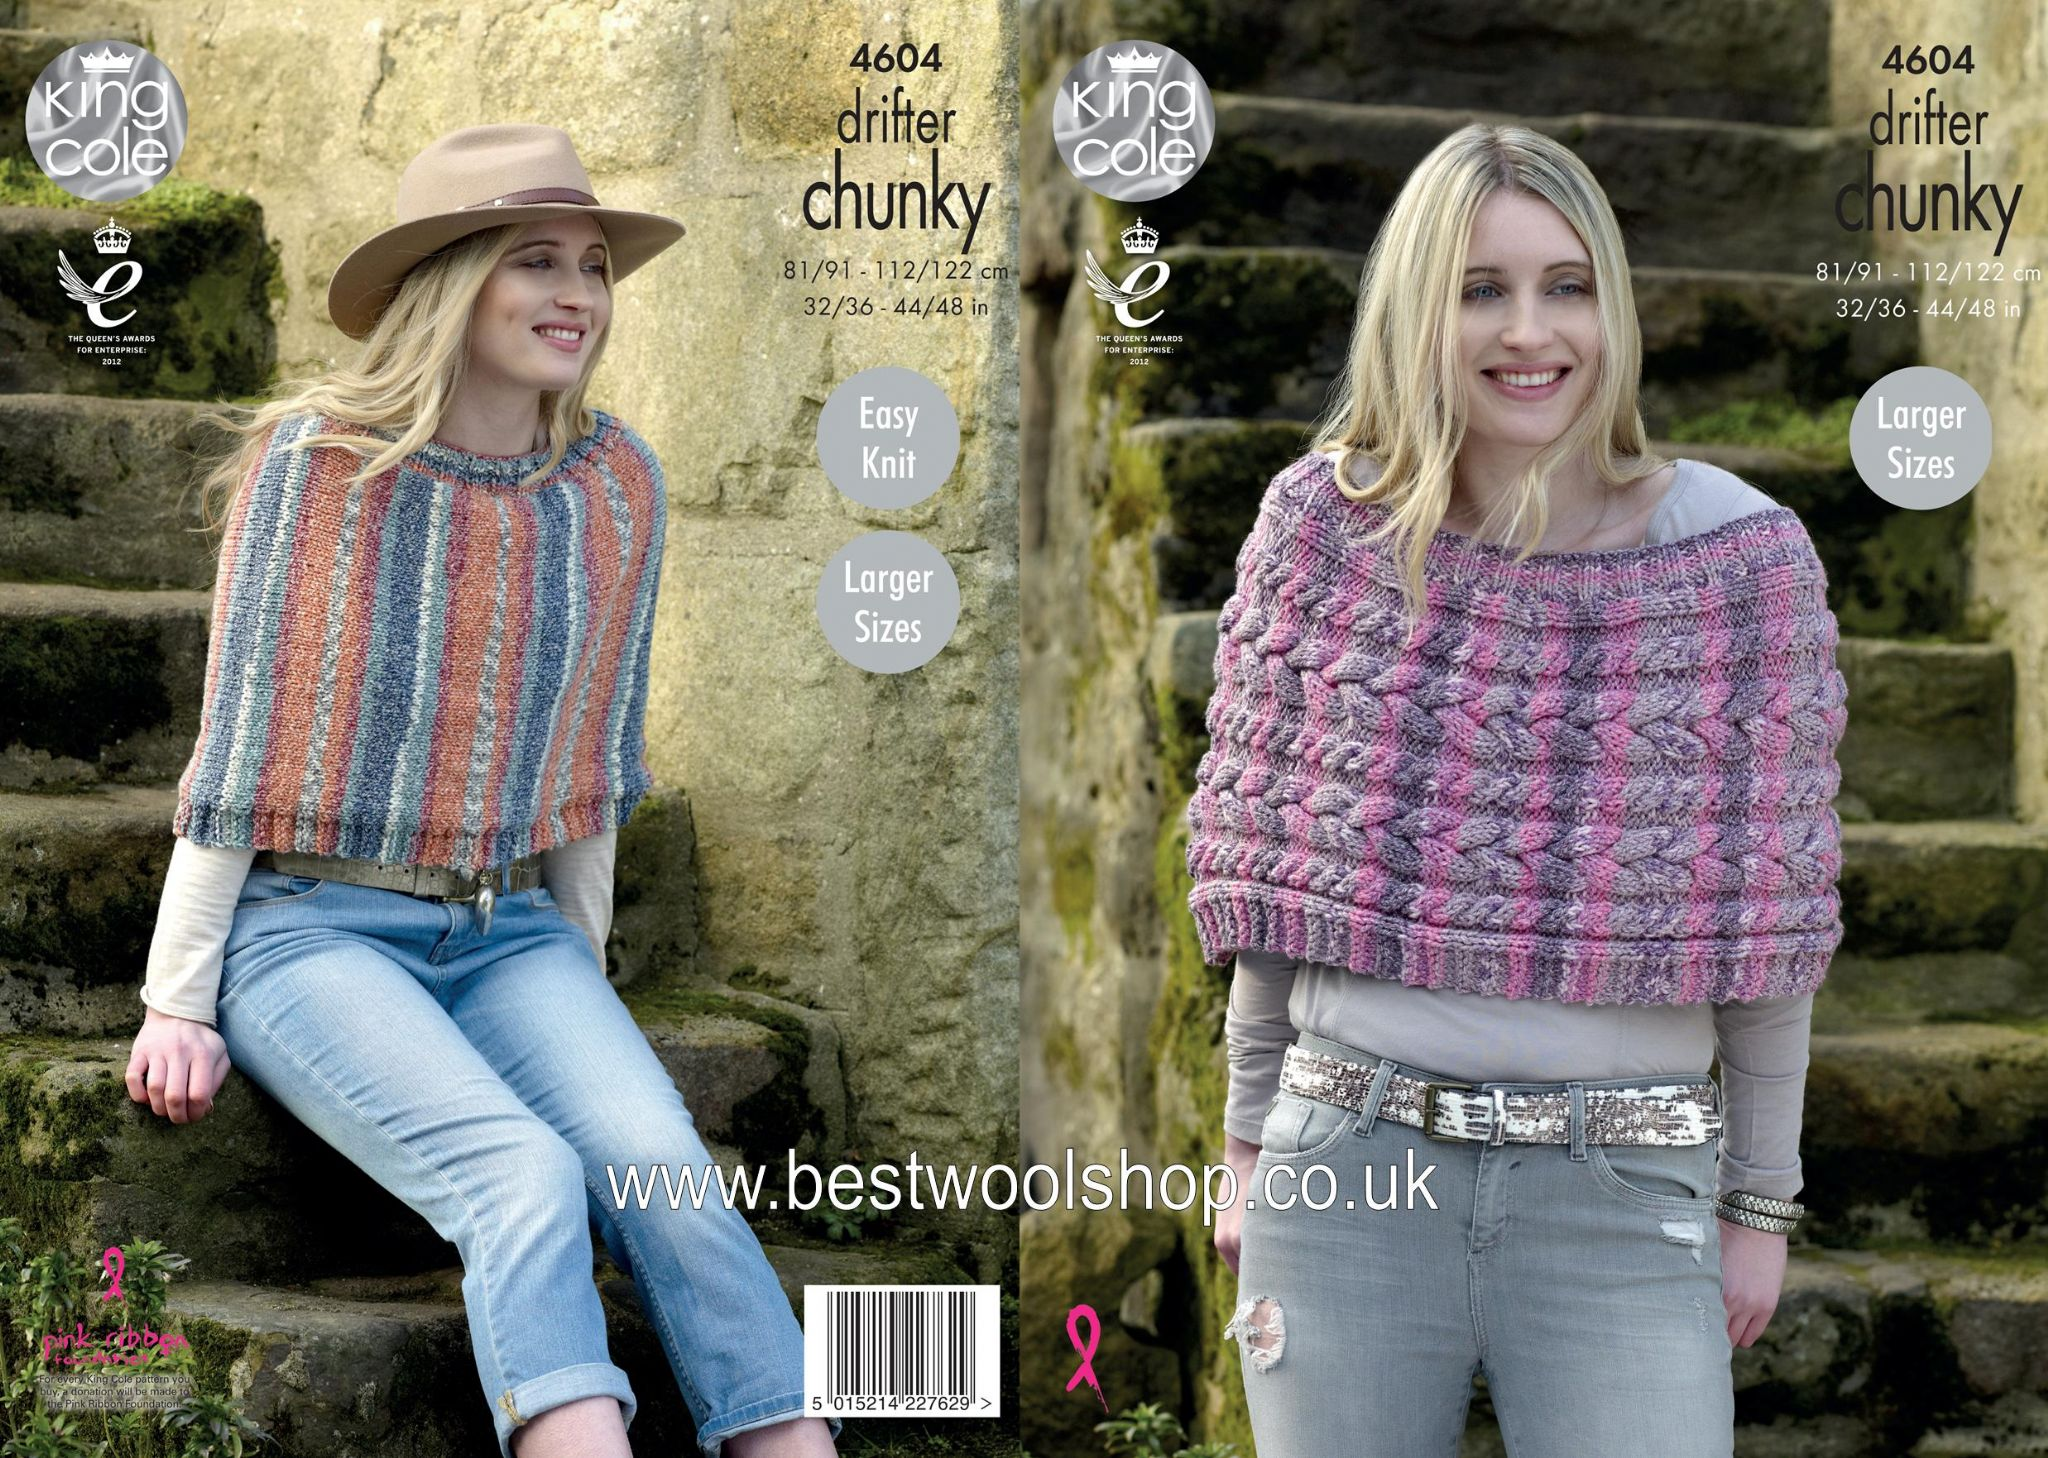 4604 - KING COLE DRIFTER CHUNKY EASY KNIT PLAIN OR CABLED CAPE ...